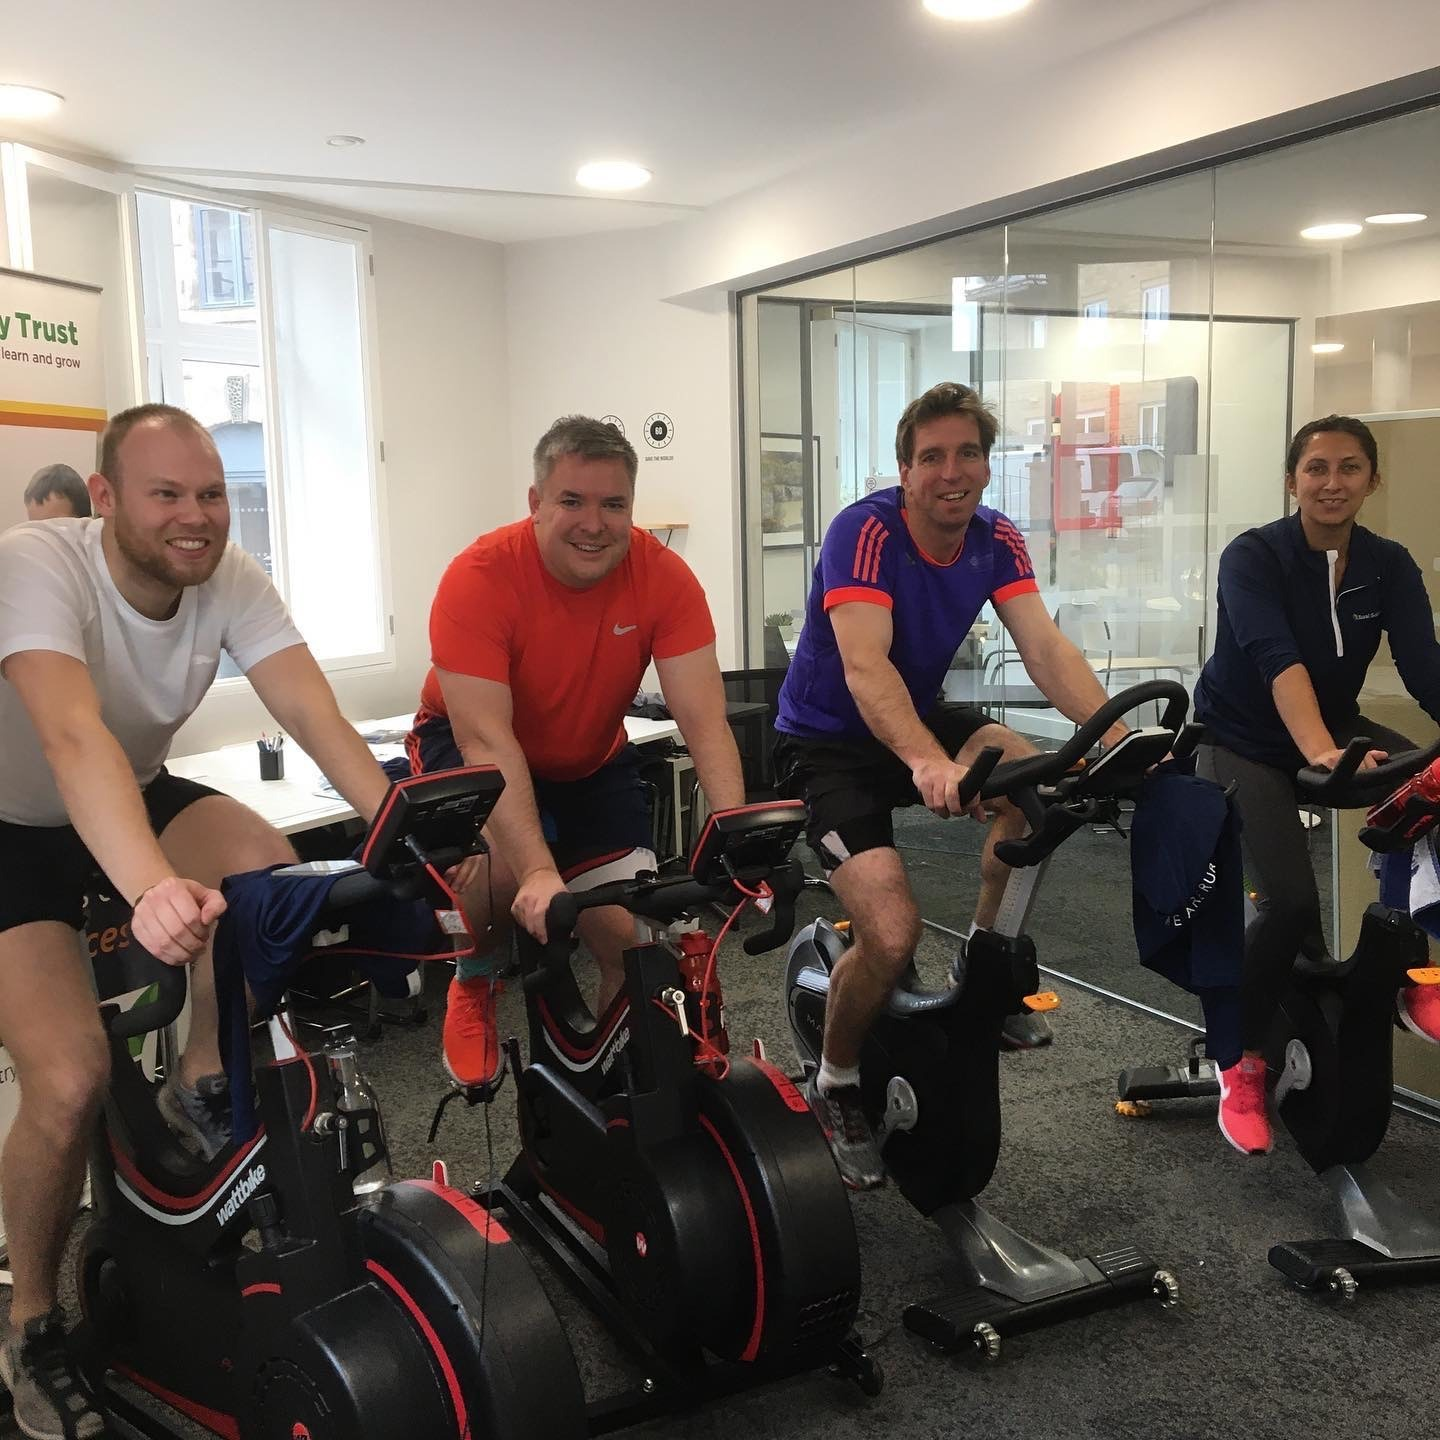 RURAL SOLUTIONS TEAM SET TO TAKE PART IN CYCLING THE LENGTH OF THE UK CHALLENGE IN AID OF COUNTRY TRUST CHARITY